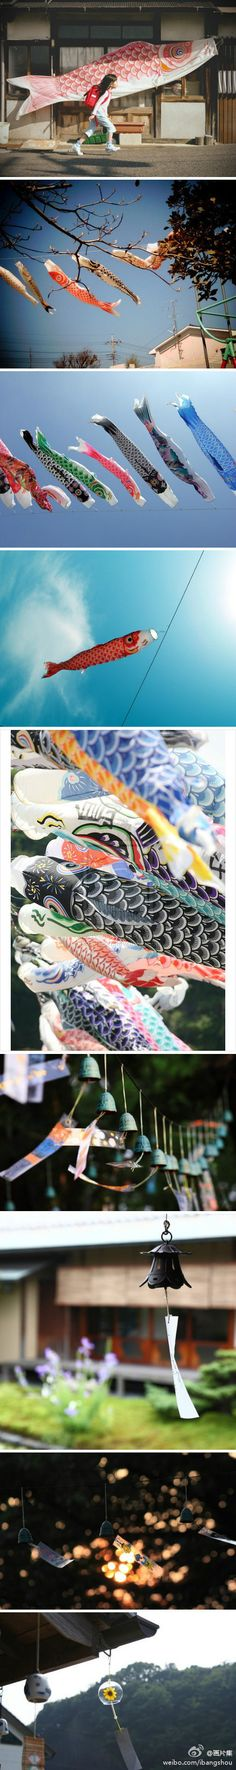 "Koinobori, meaning ""carp streamer"" in Japanese, are carp-shaped wind socks traditionally flown in Japan to celebrate Children's Day."